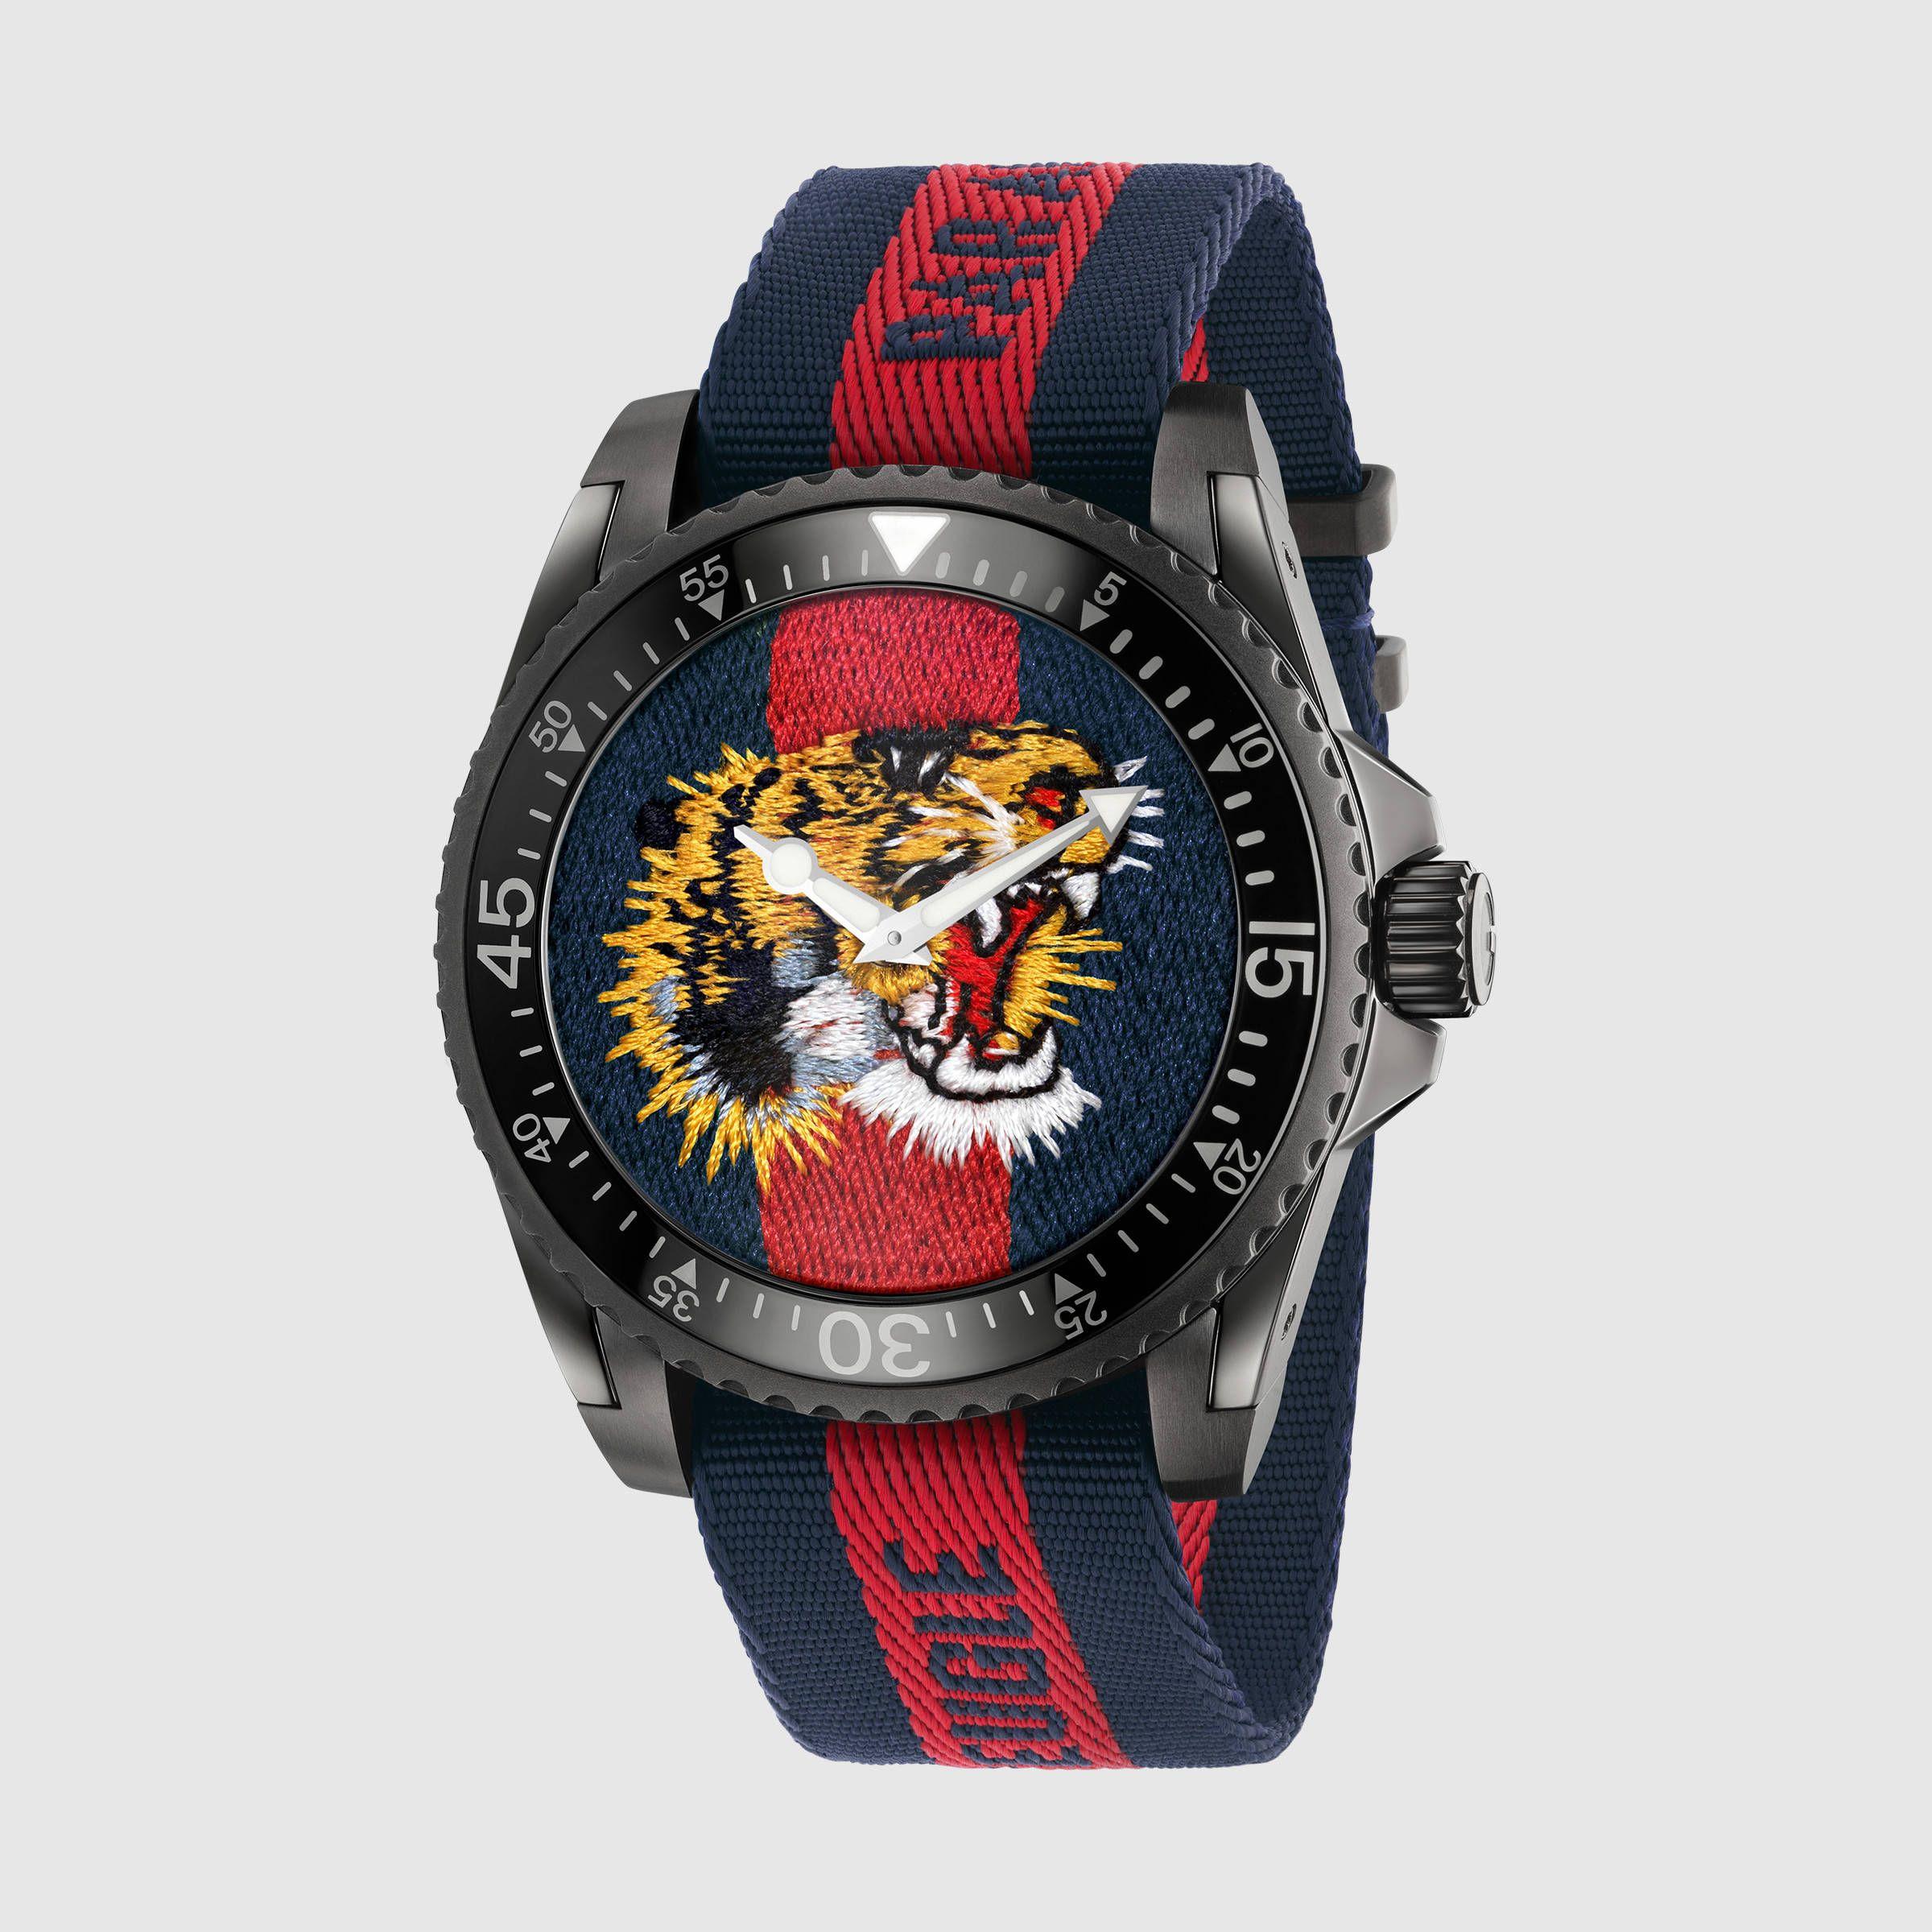 4284a95087 This Gucci watch is absolutely amazing so its should be something majestic